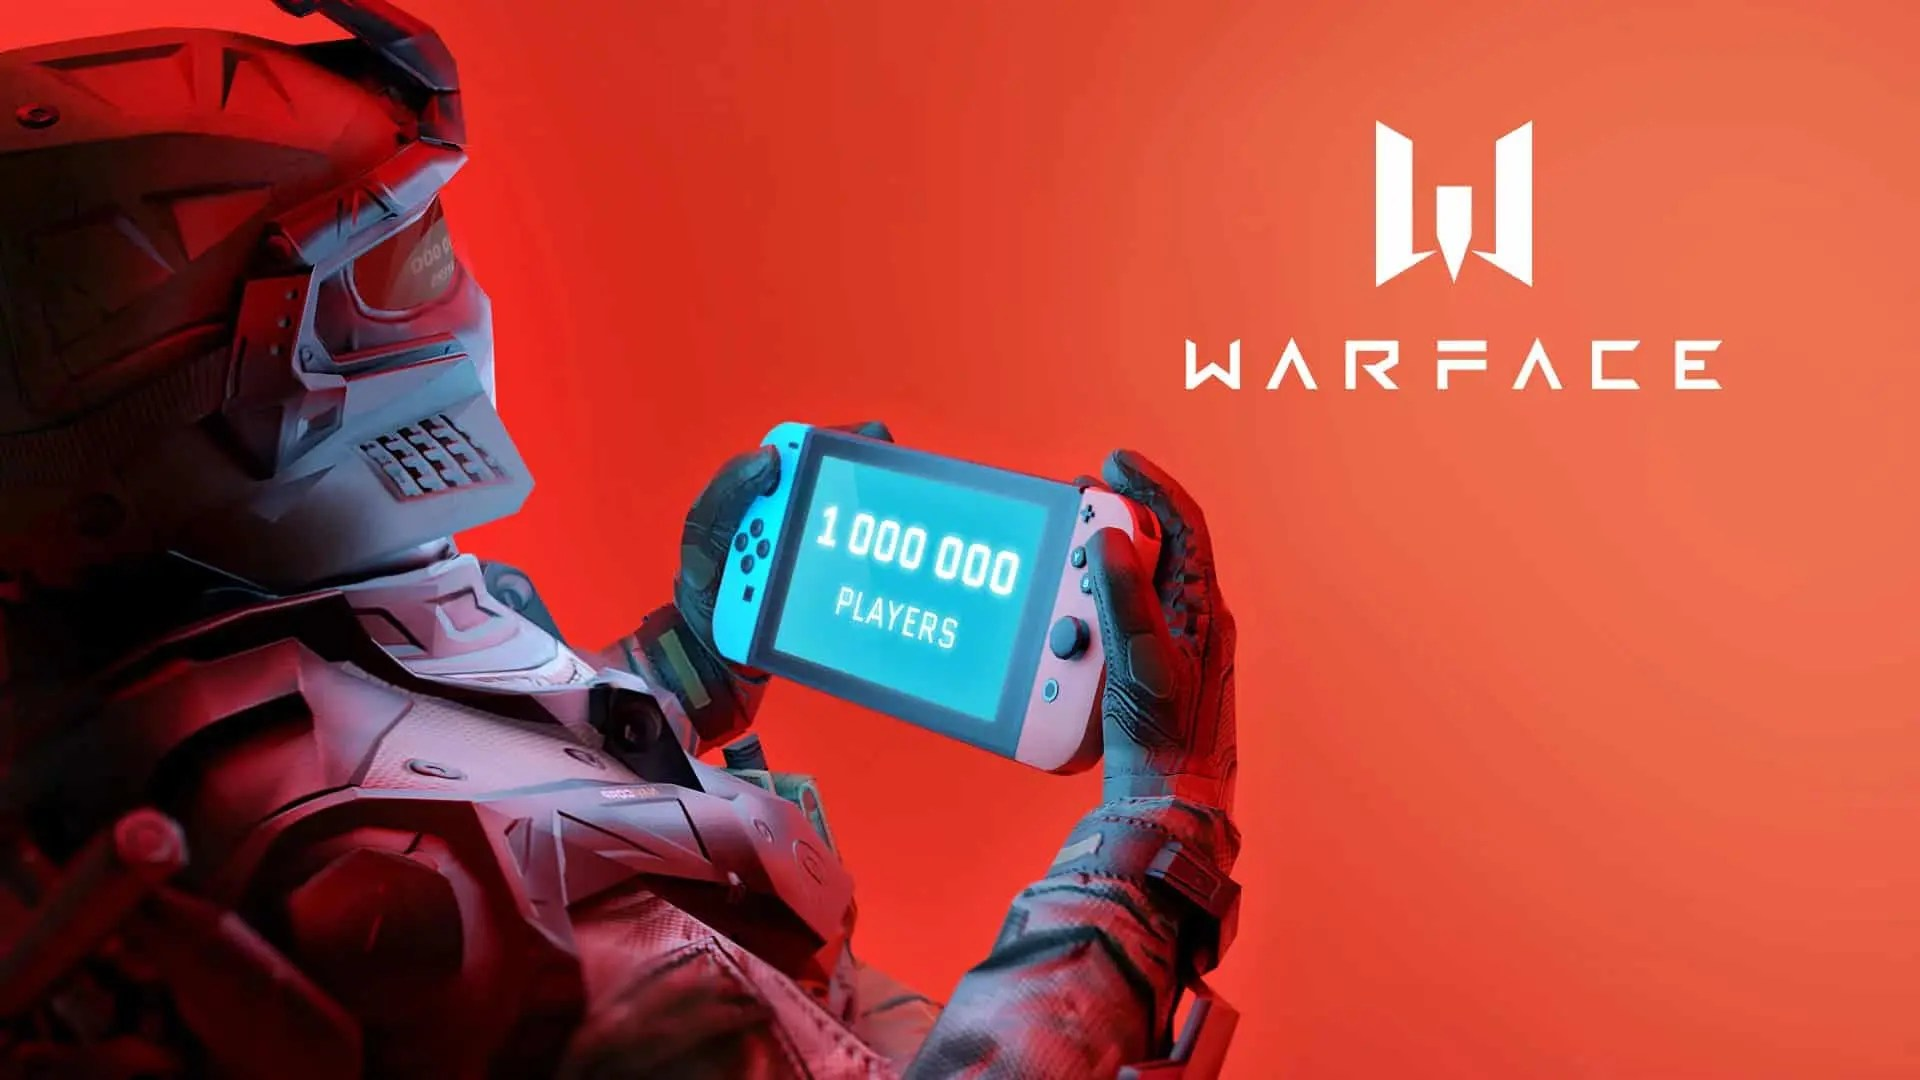 Nintendo Switch: Warface FPS Game Reaches 1 Million Players Milestone in One Month - MobiGaming.com